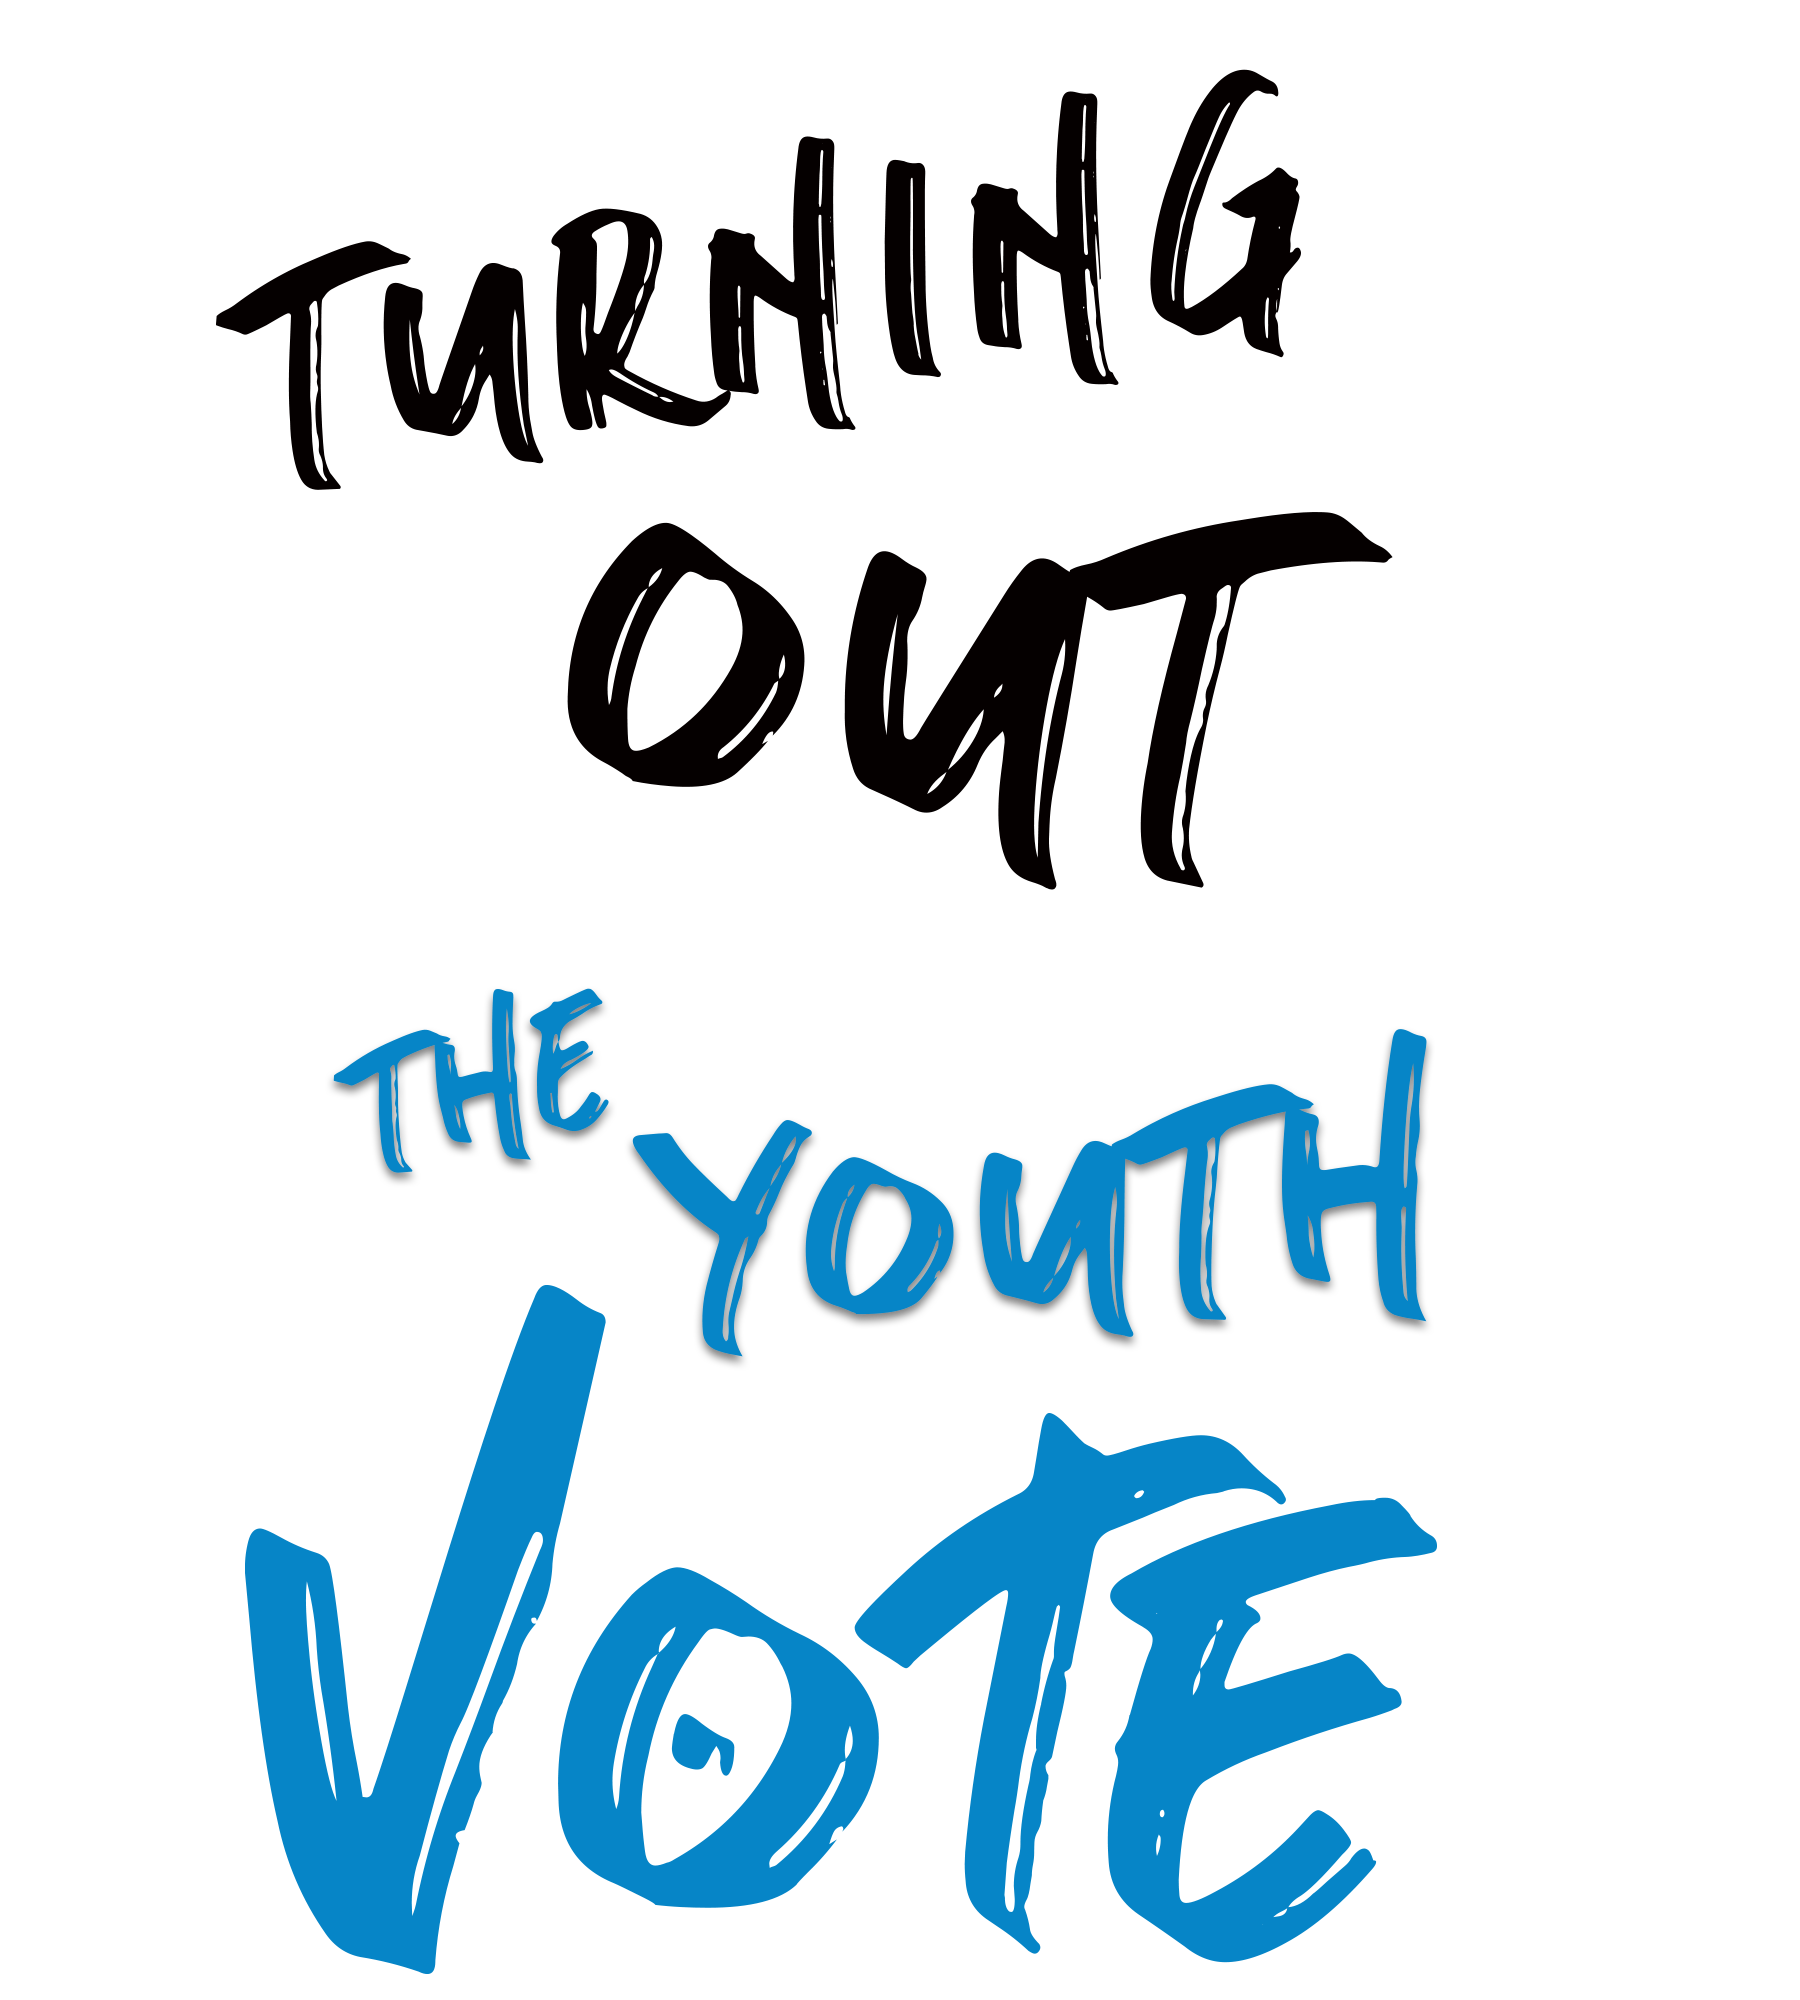 Turning Out: The Youth Vote Logo